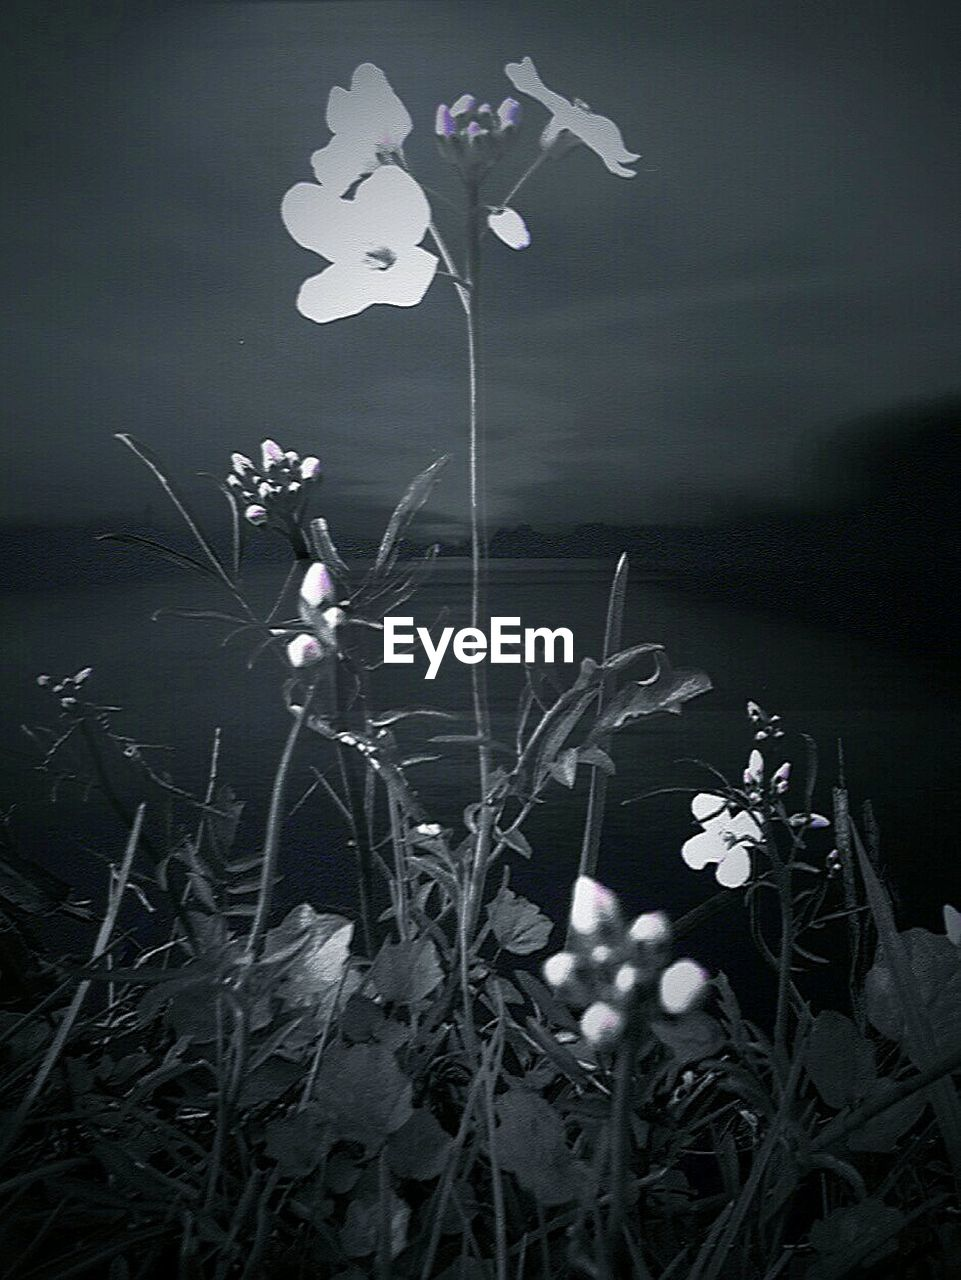 flower, growth, plant, nature, petal, spring, blooming, no people, night, fragility, close-up, outdoors